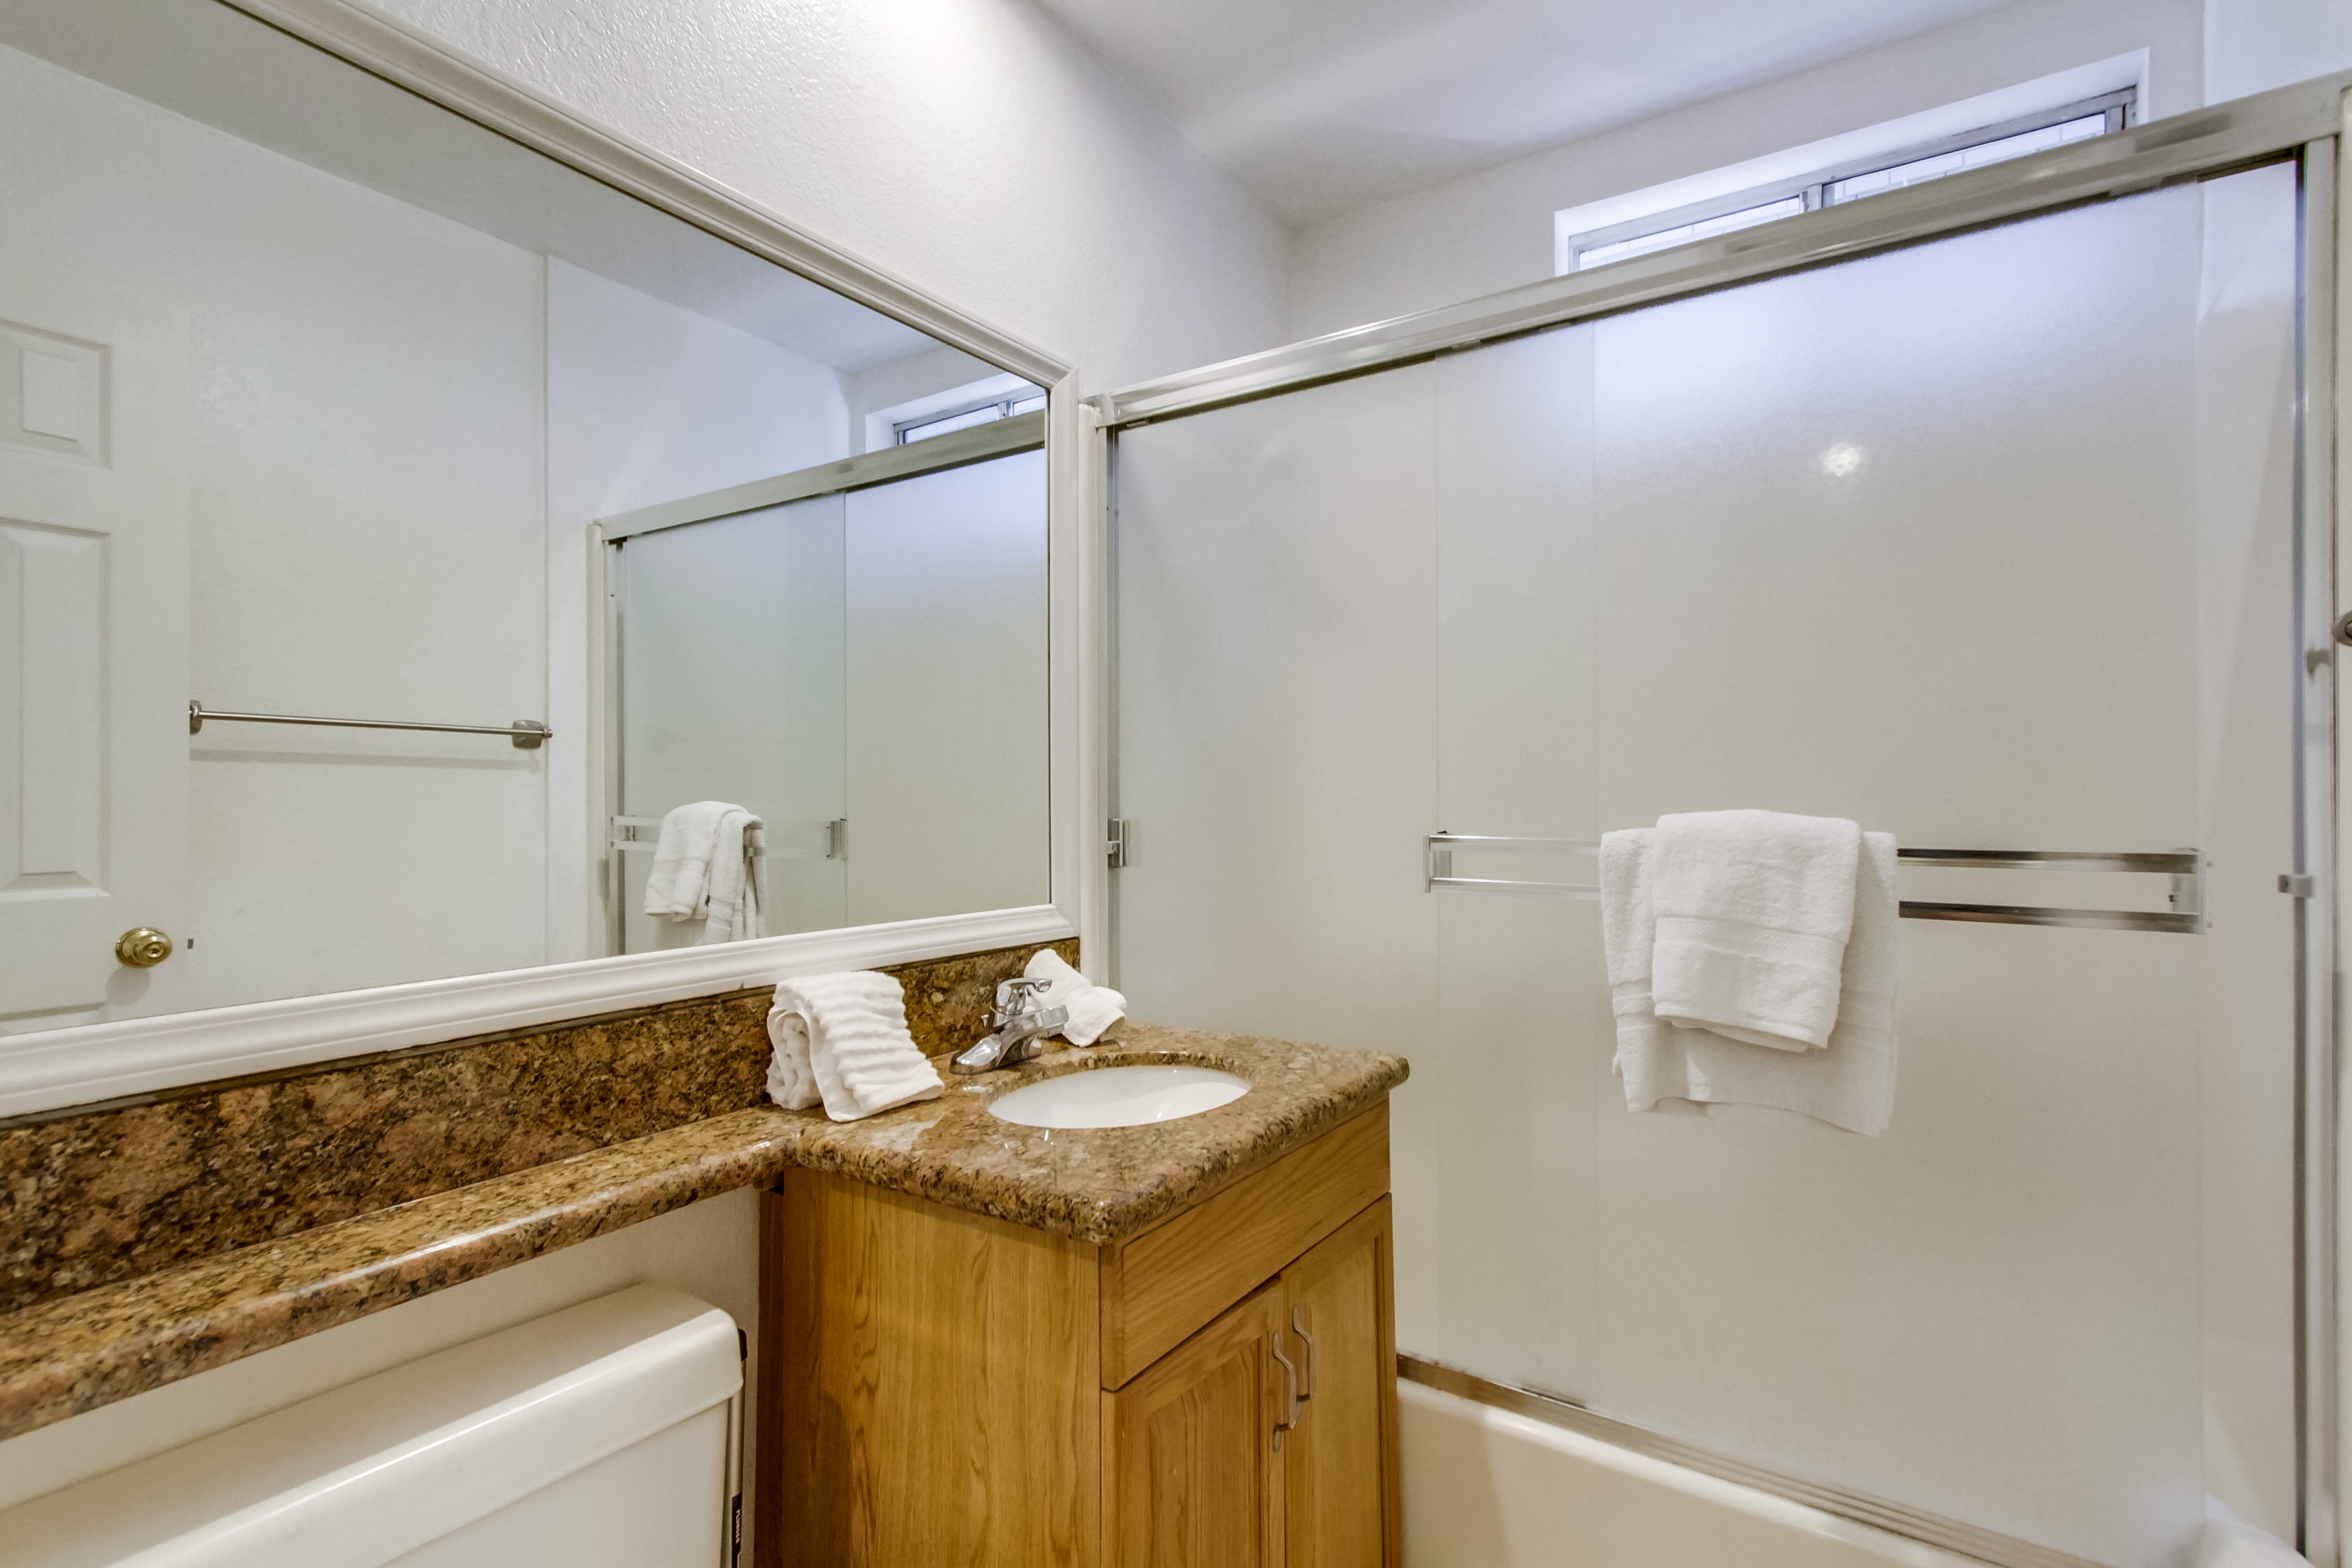 Single Sink Vanity, Mirror, and Shower-Tub Combo.